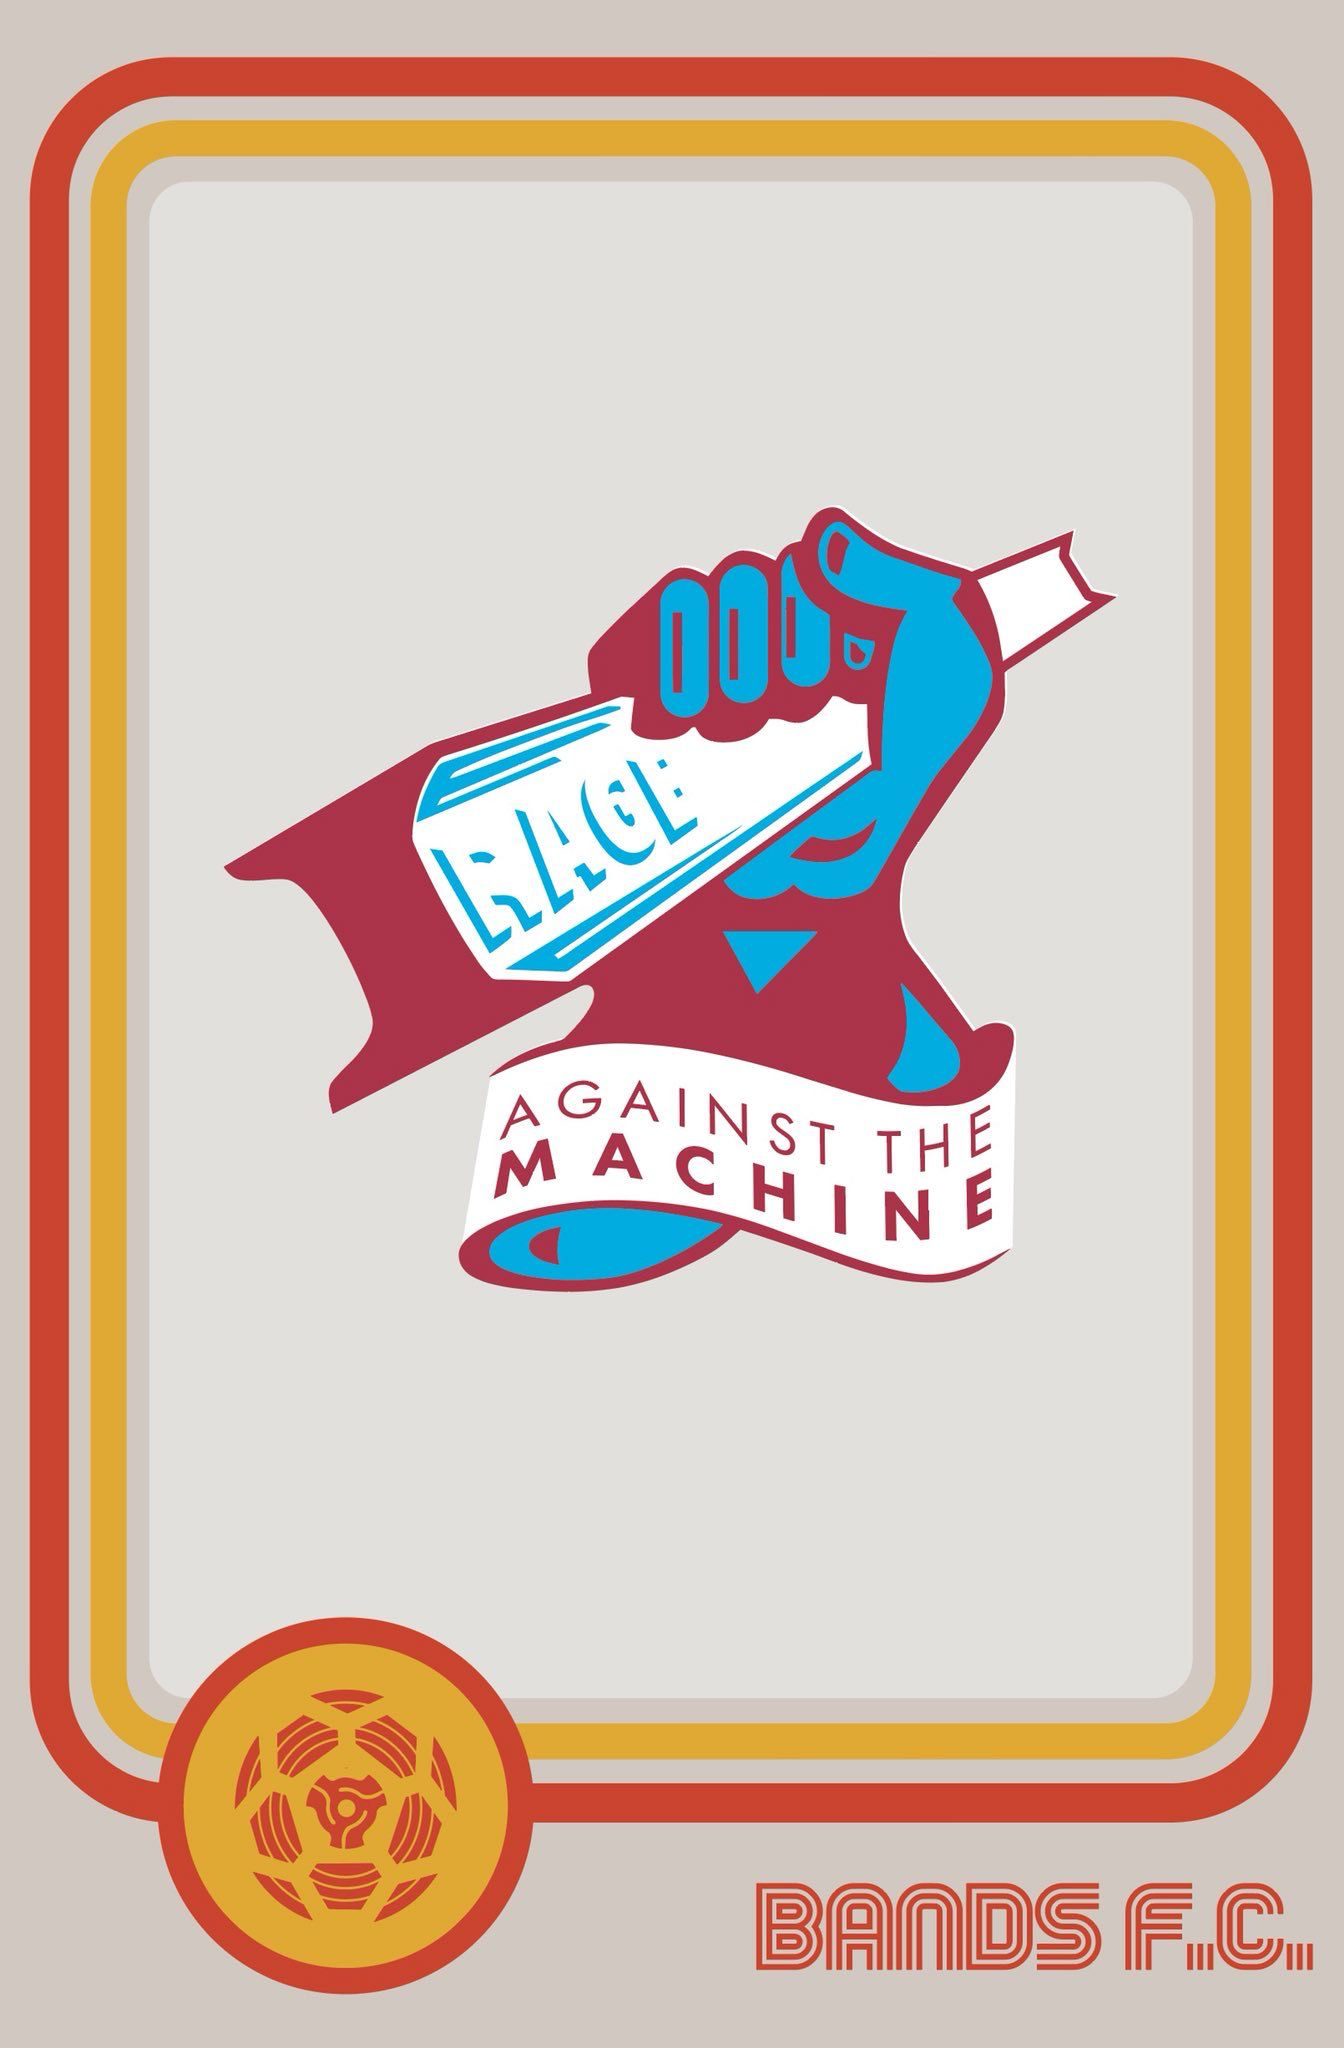 Pin by Indy Saha on Music The machine band, Band